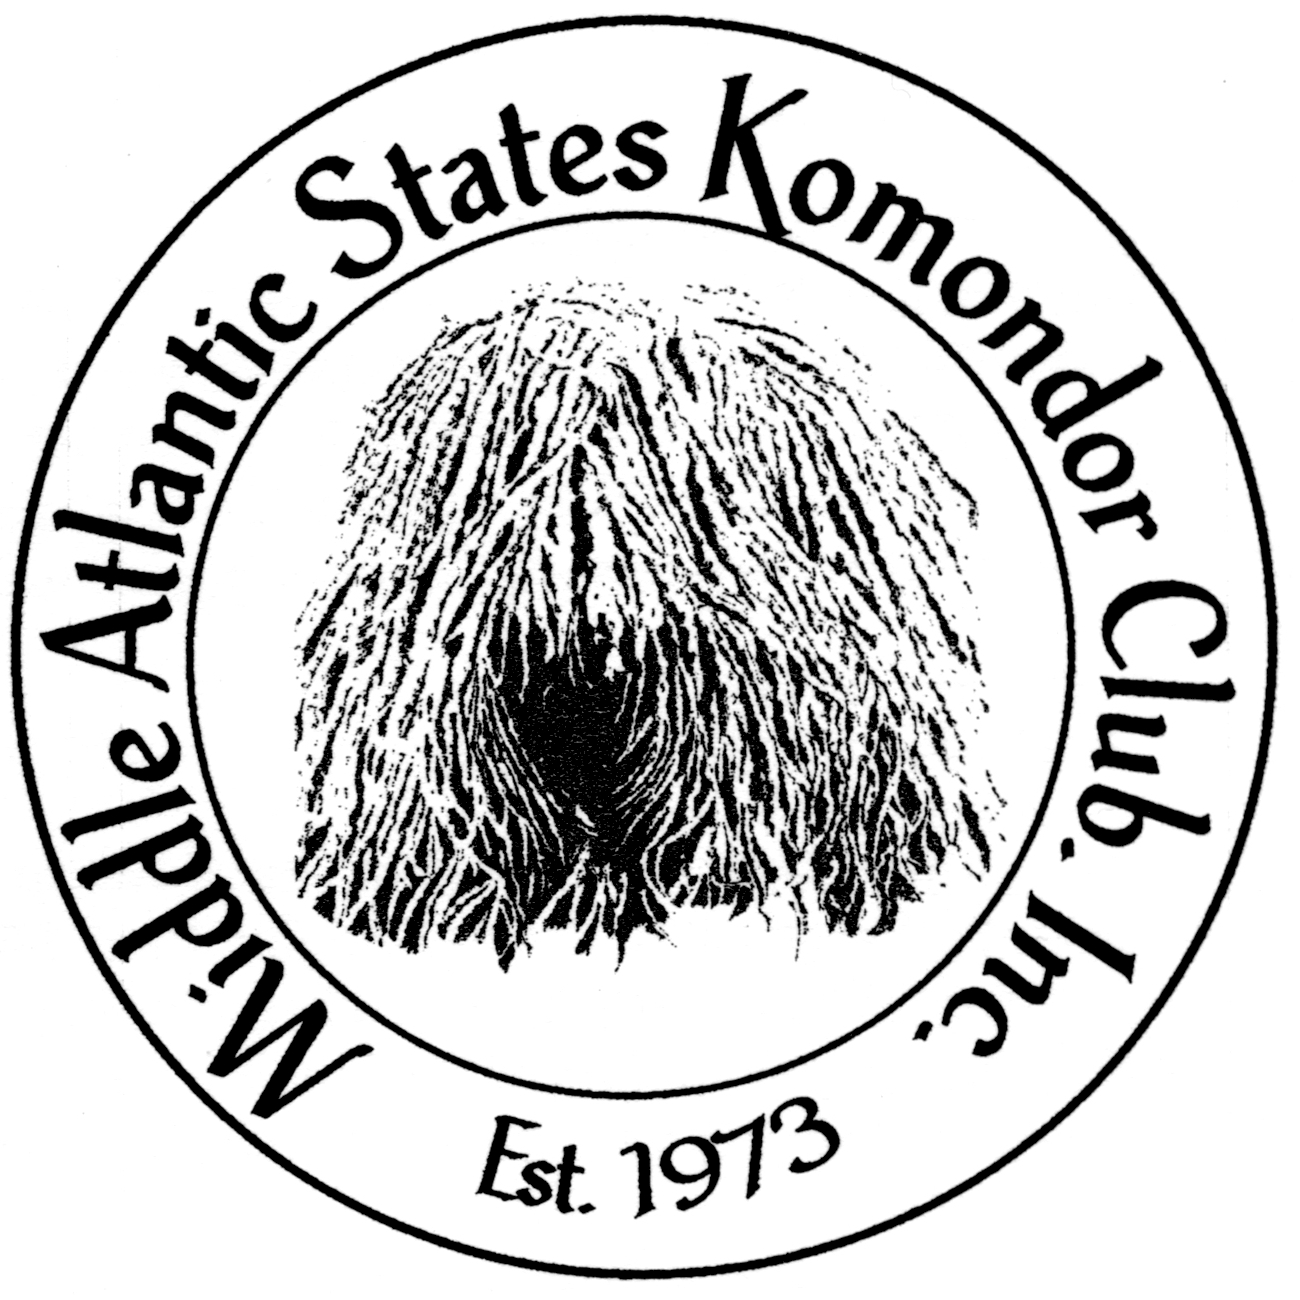 Middle Atlantic States Komondor Club